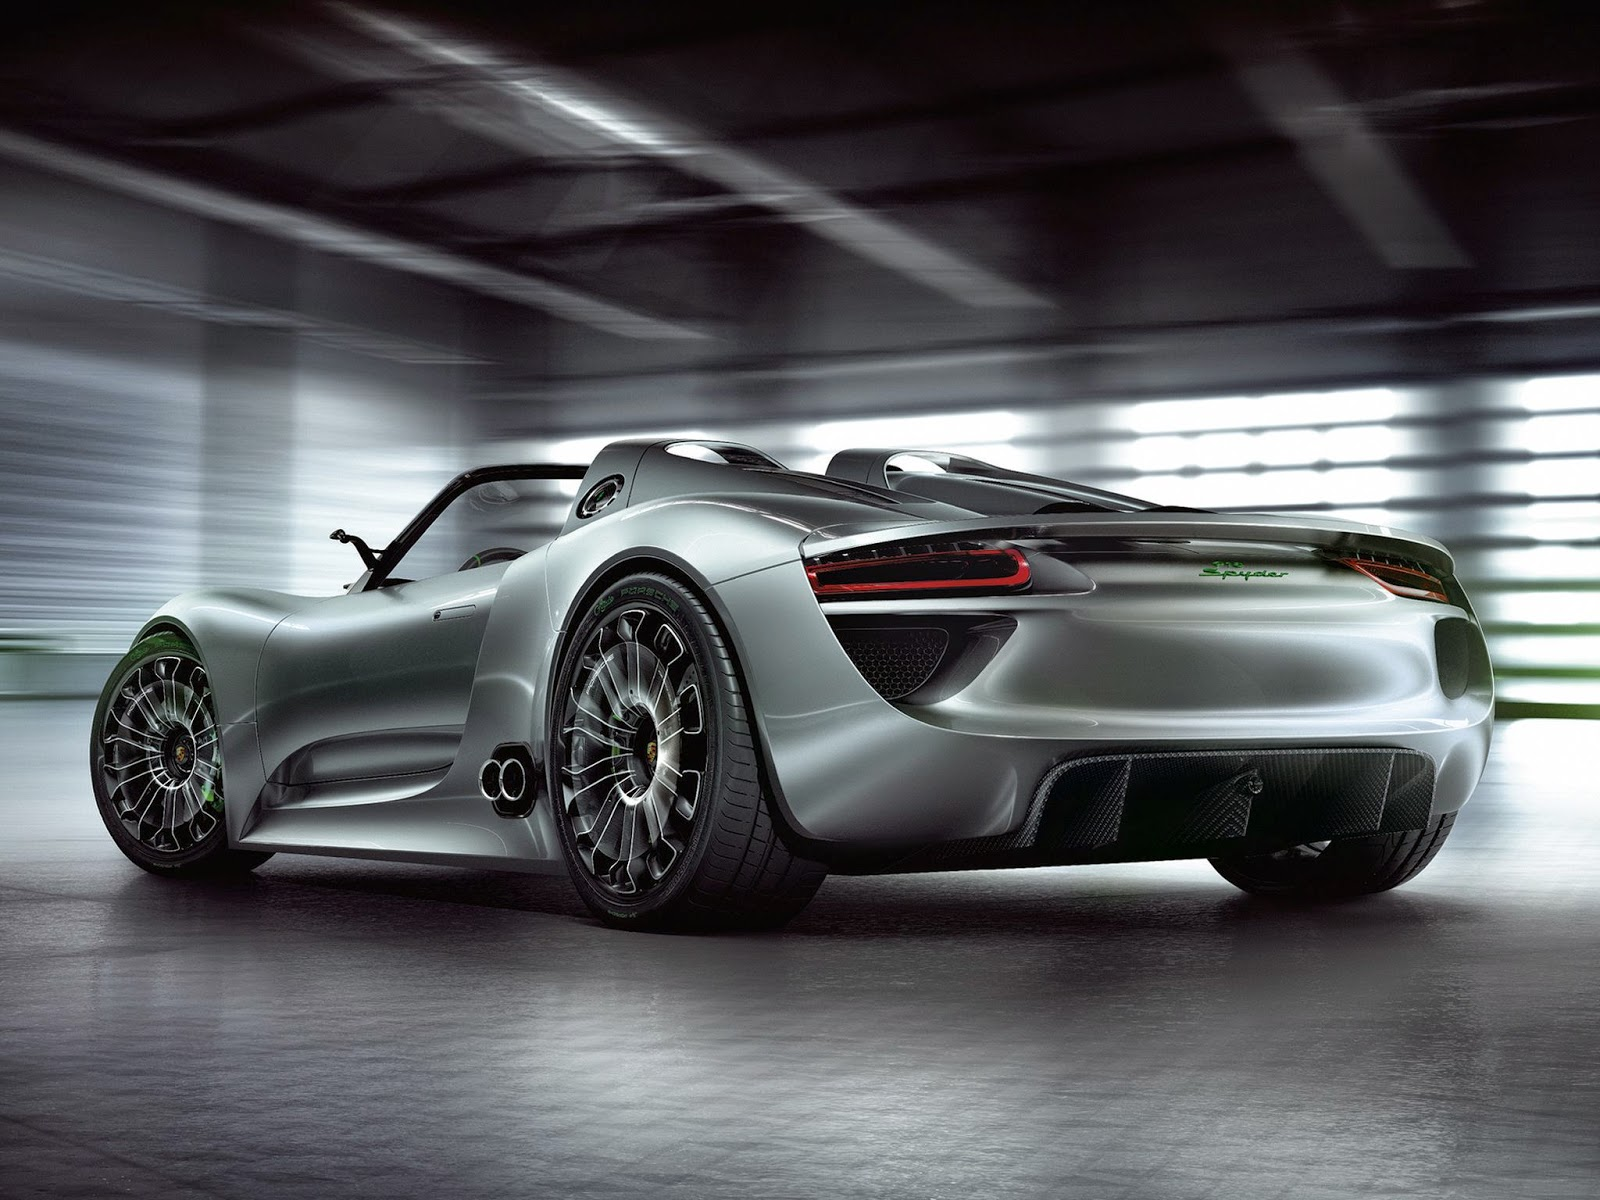 10+ 3D Wallpapers car sport desktop download free Best Top Newest in